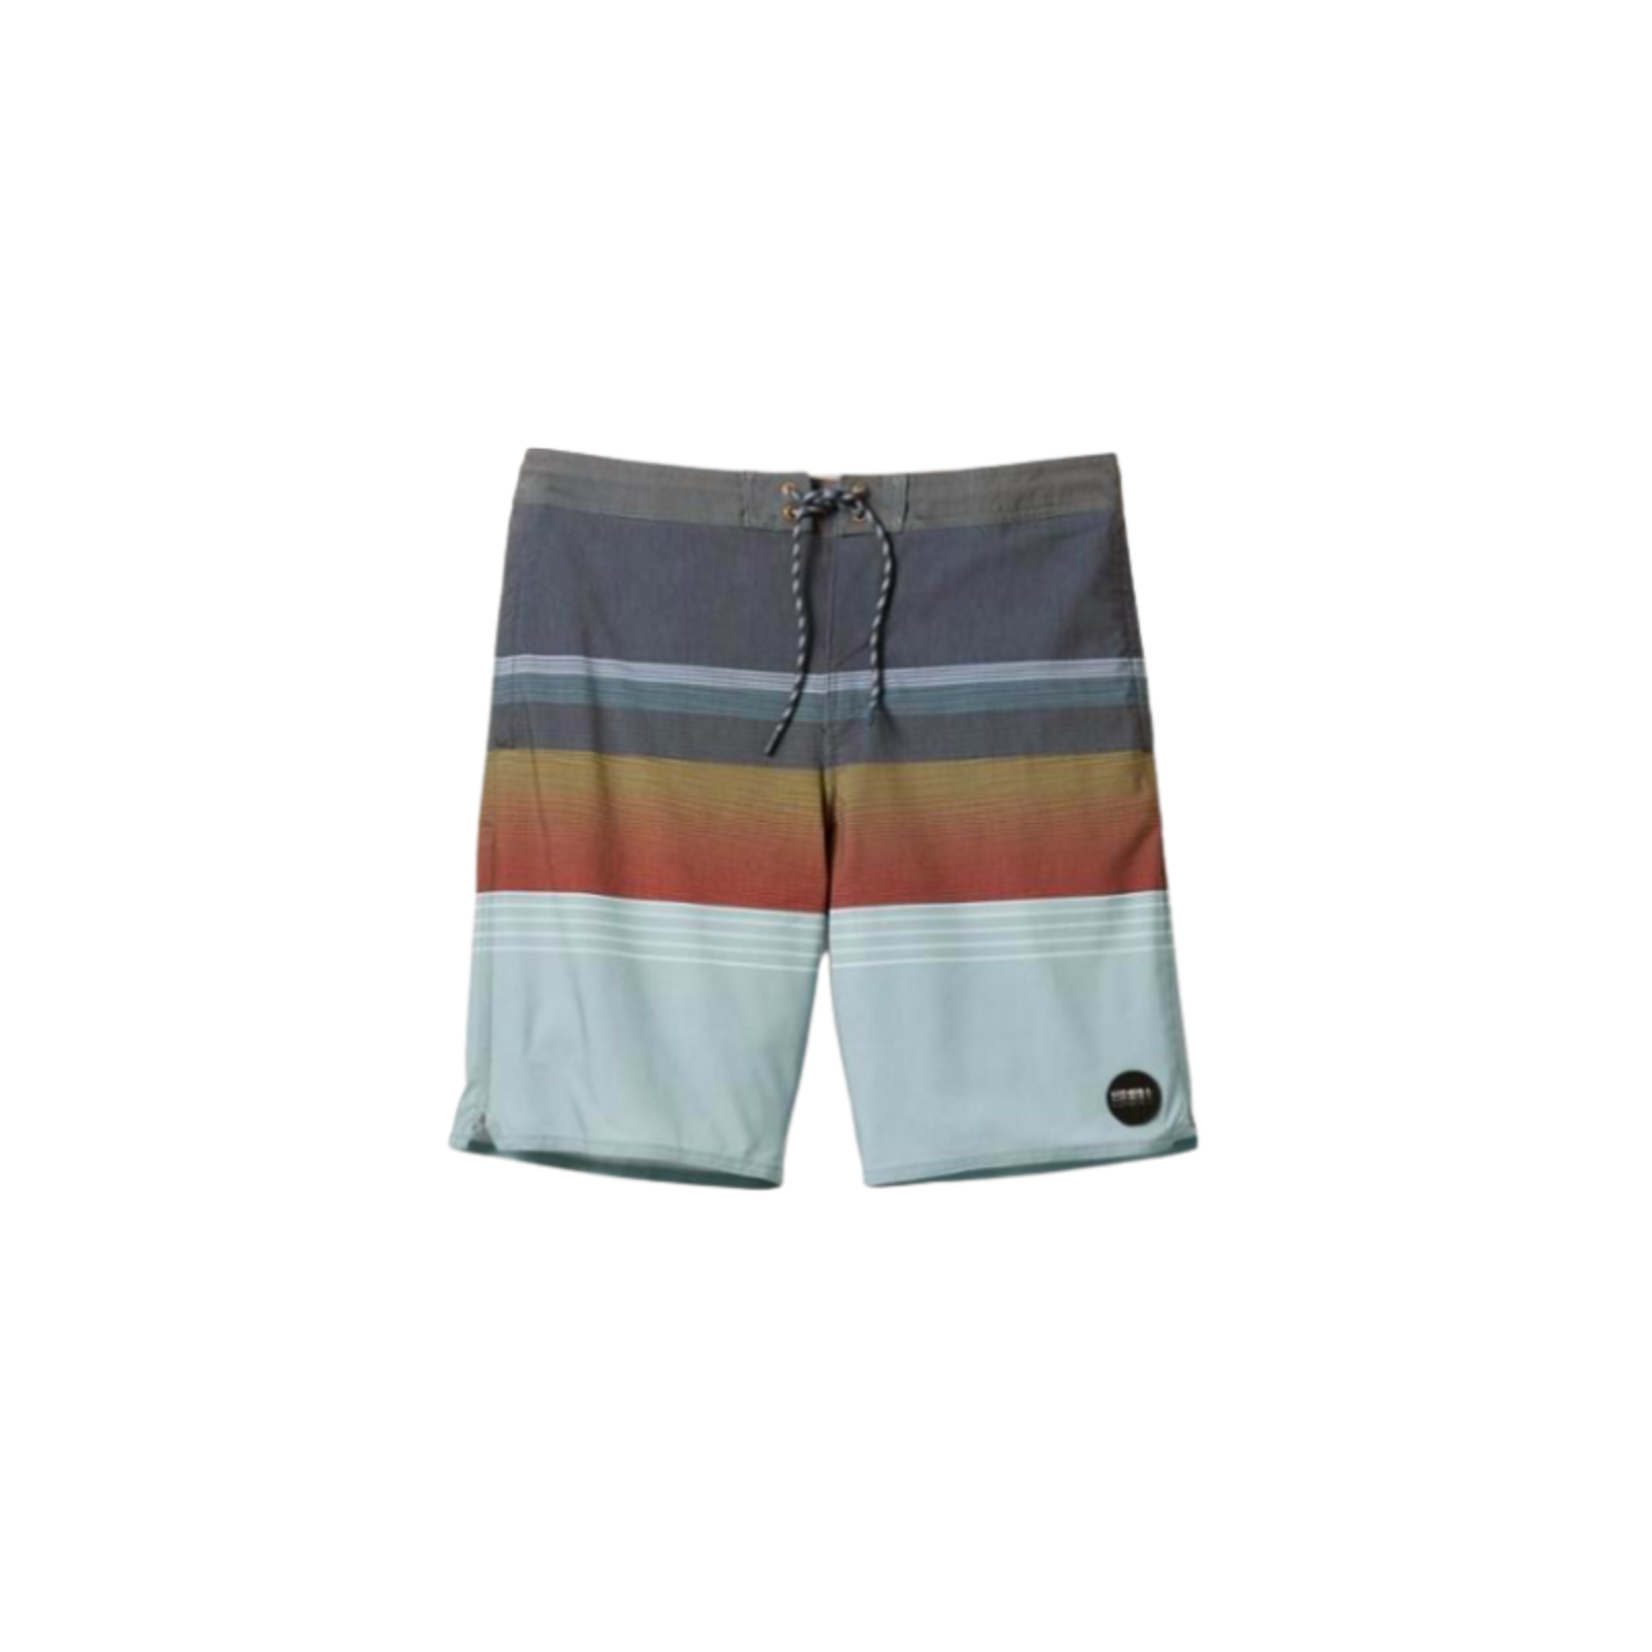 O'Neill O'Neill Men's Stripe Club Cruzer Board Shorts.